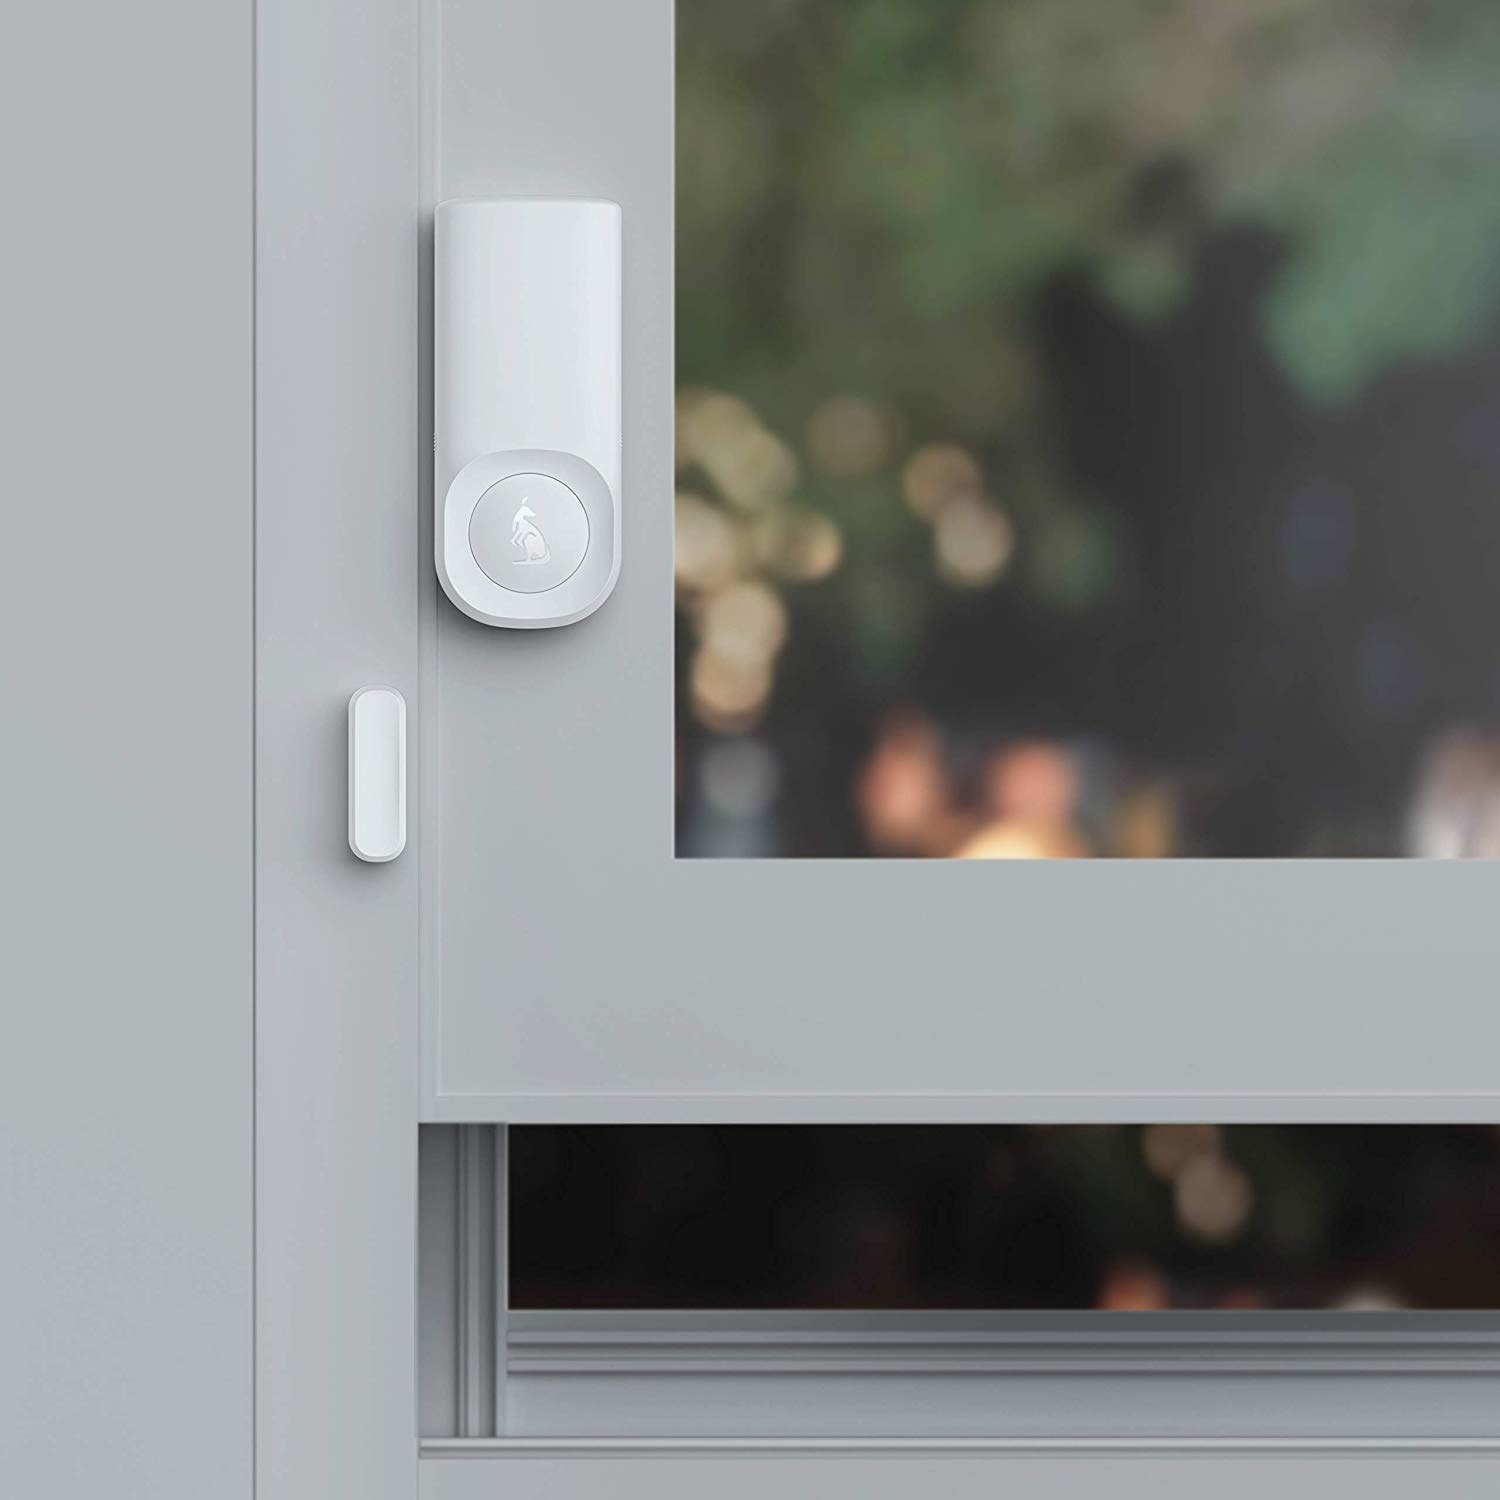 open window with minimalist white motion sensor for security